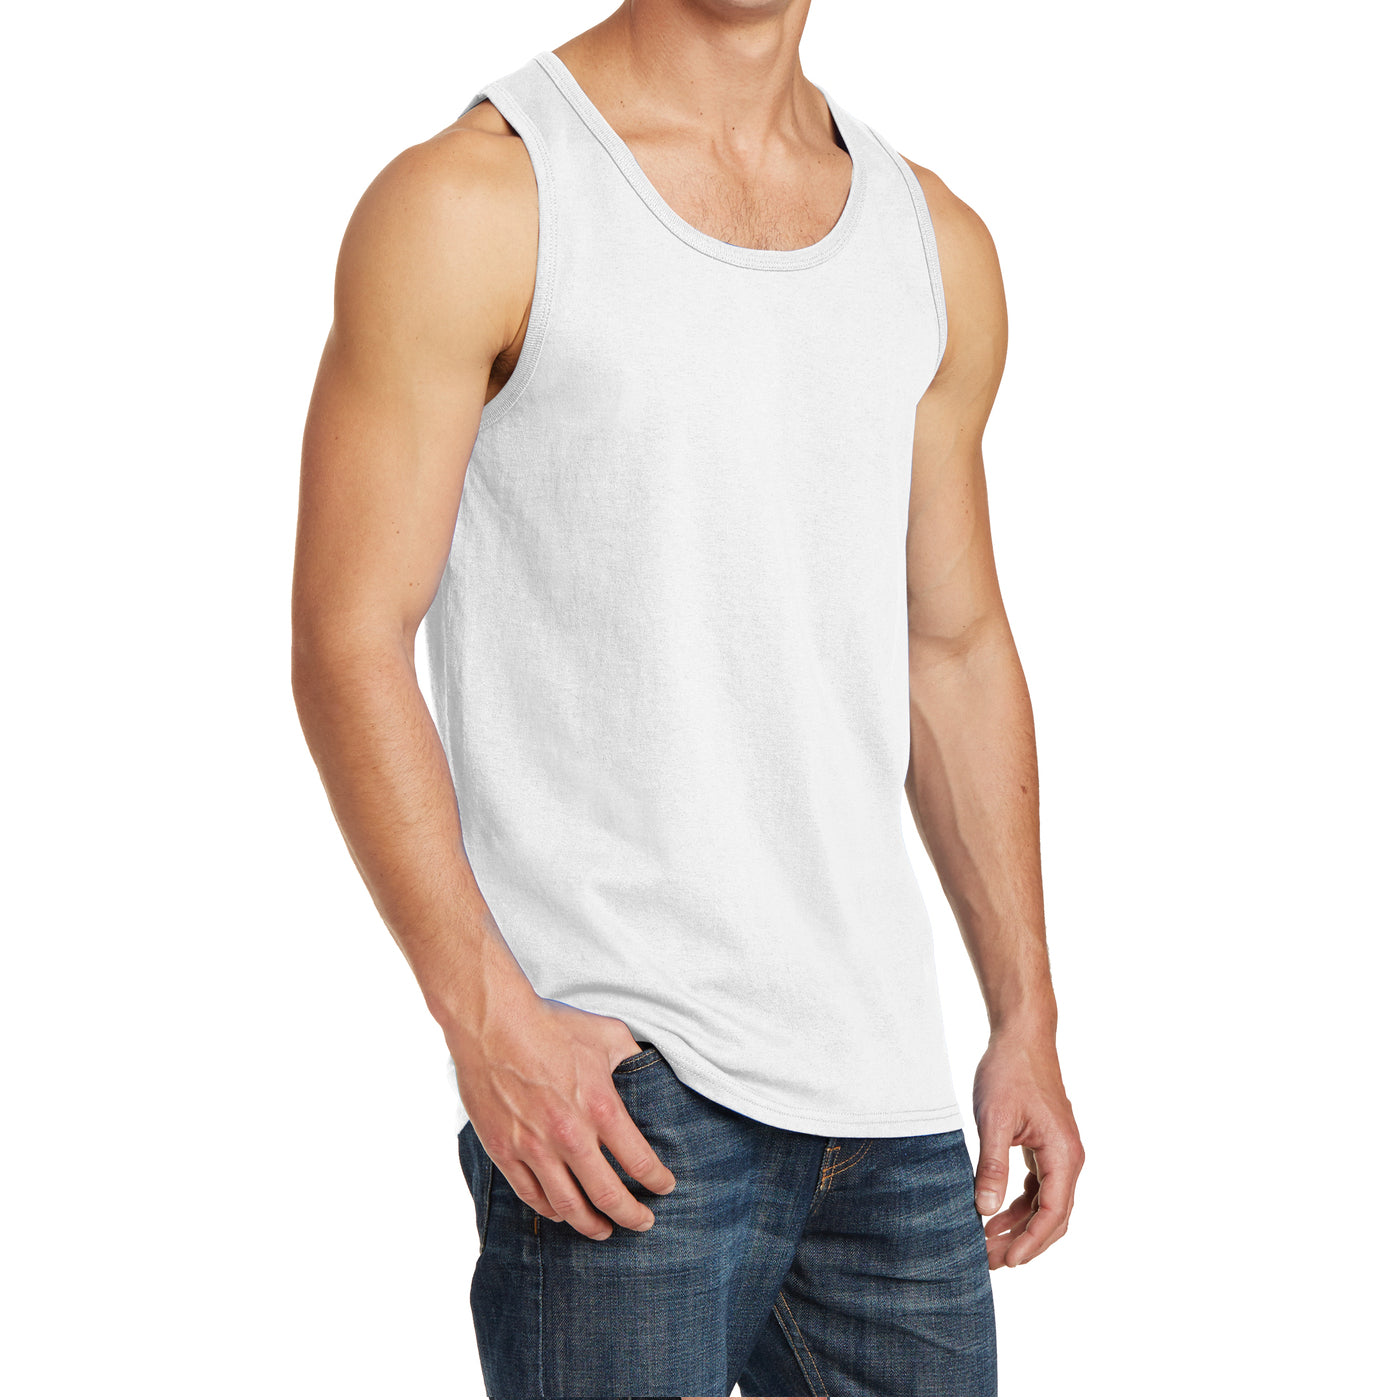 Men's Core Cotton Tank Top - White - Side